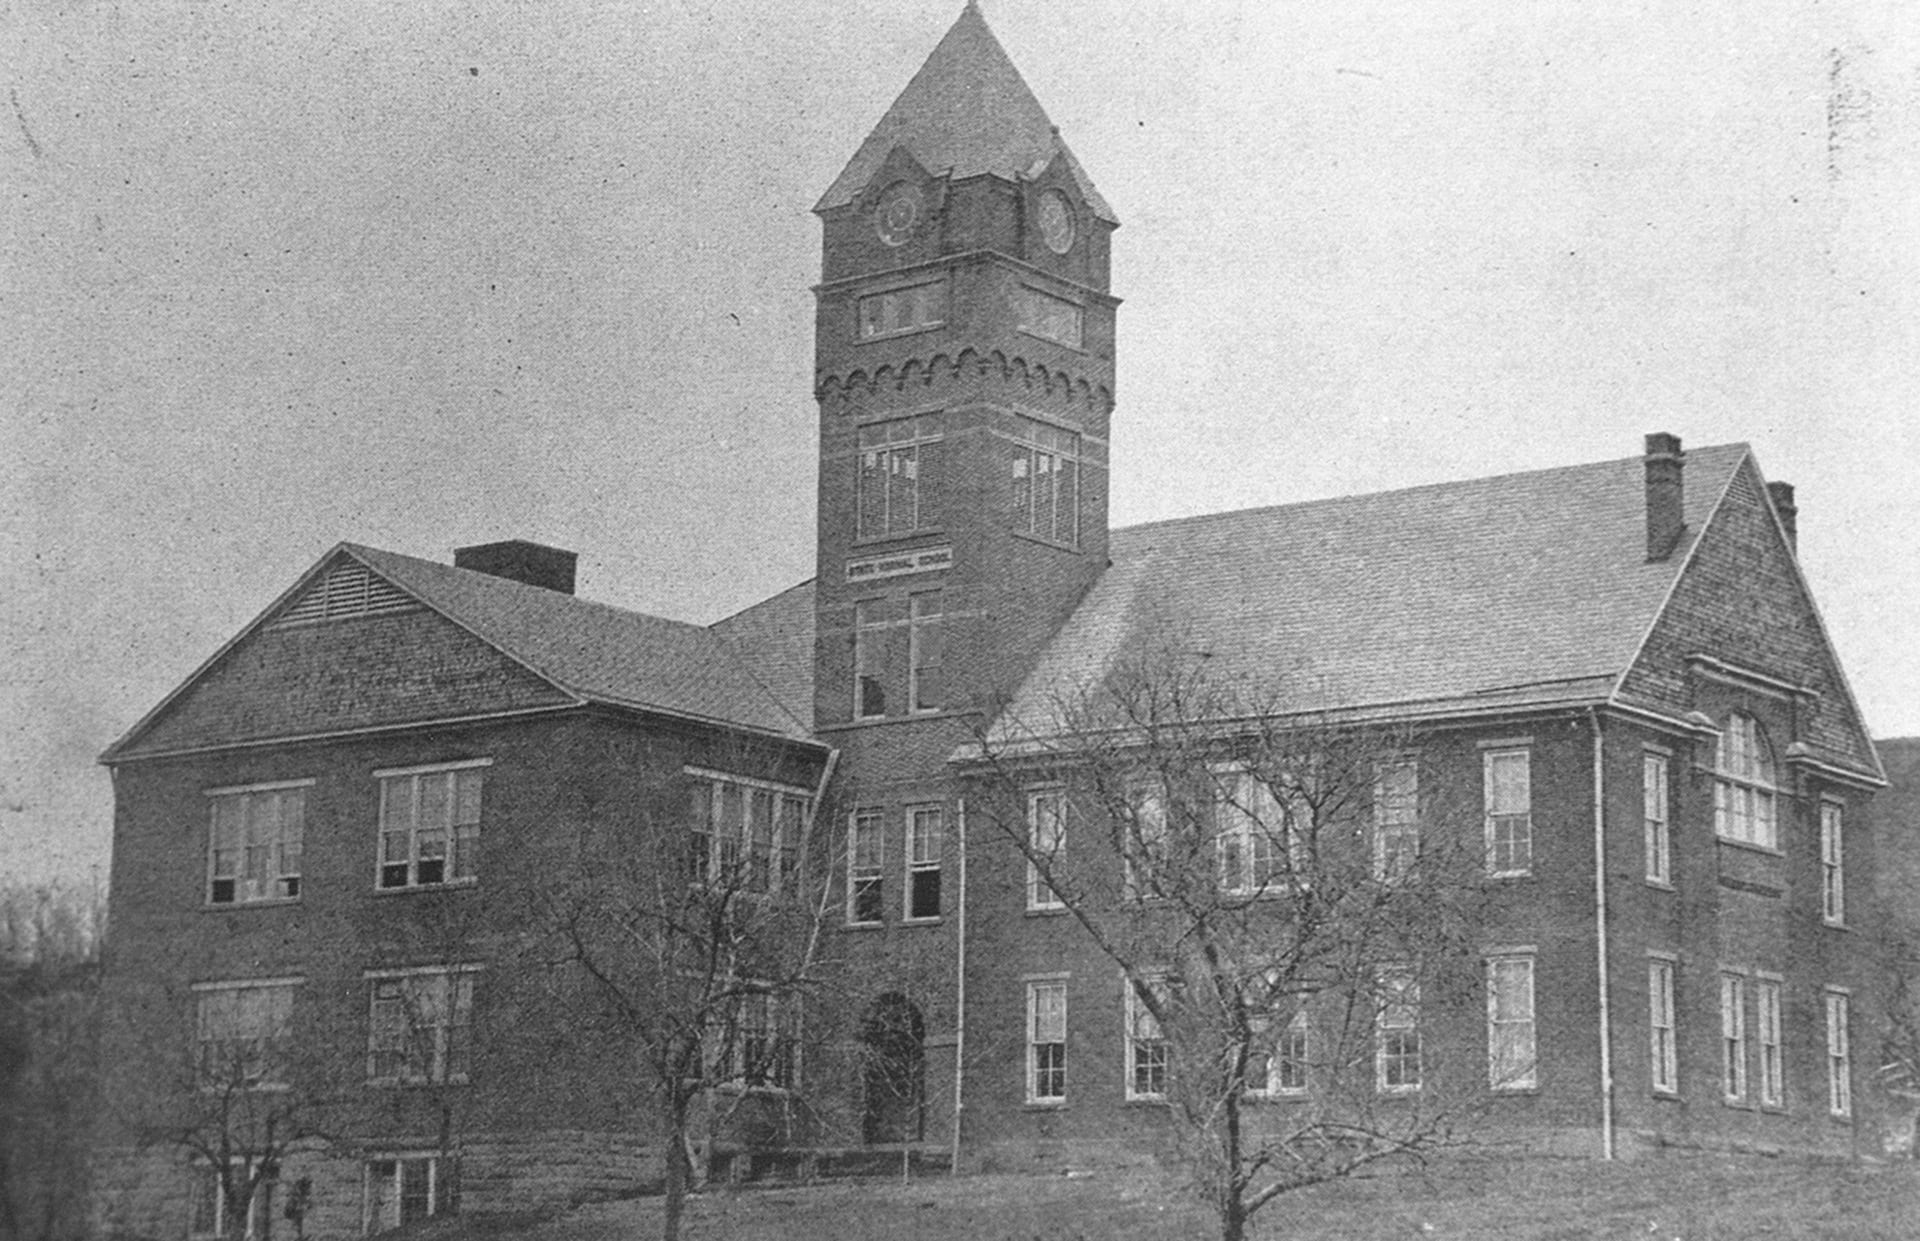 Iconic Glenville State College Clock Tower Still Beckons Pioneers Home